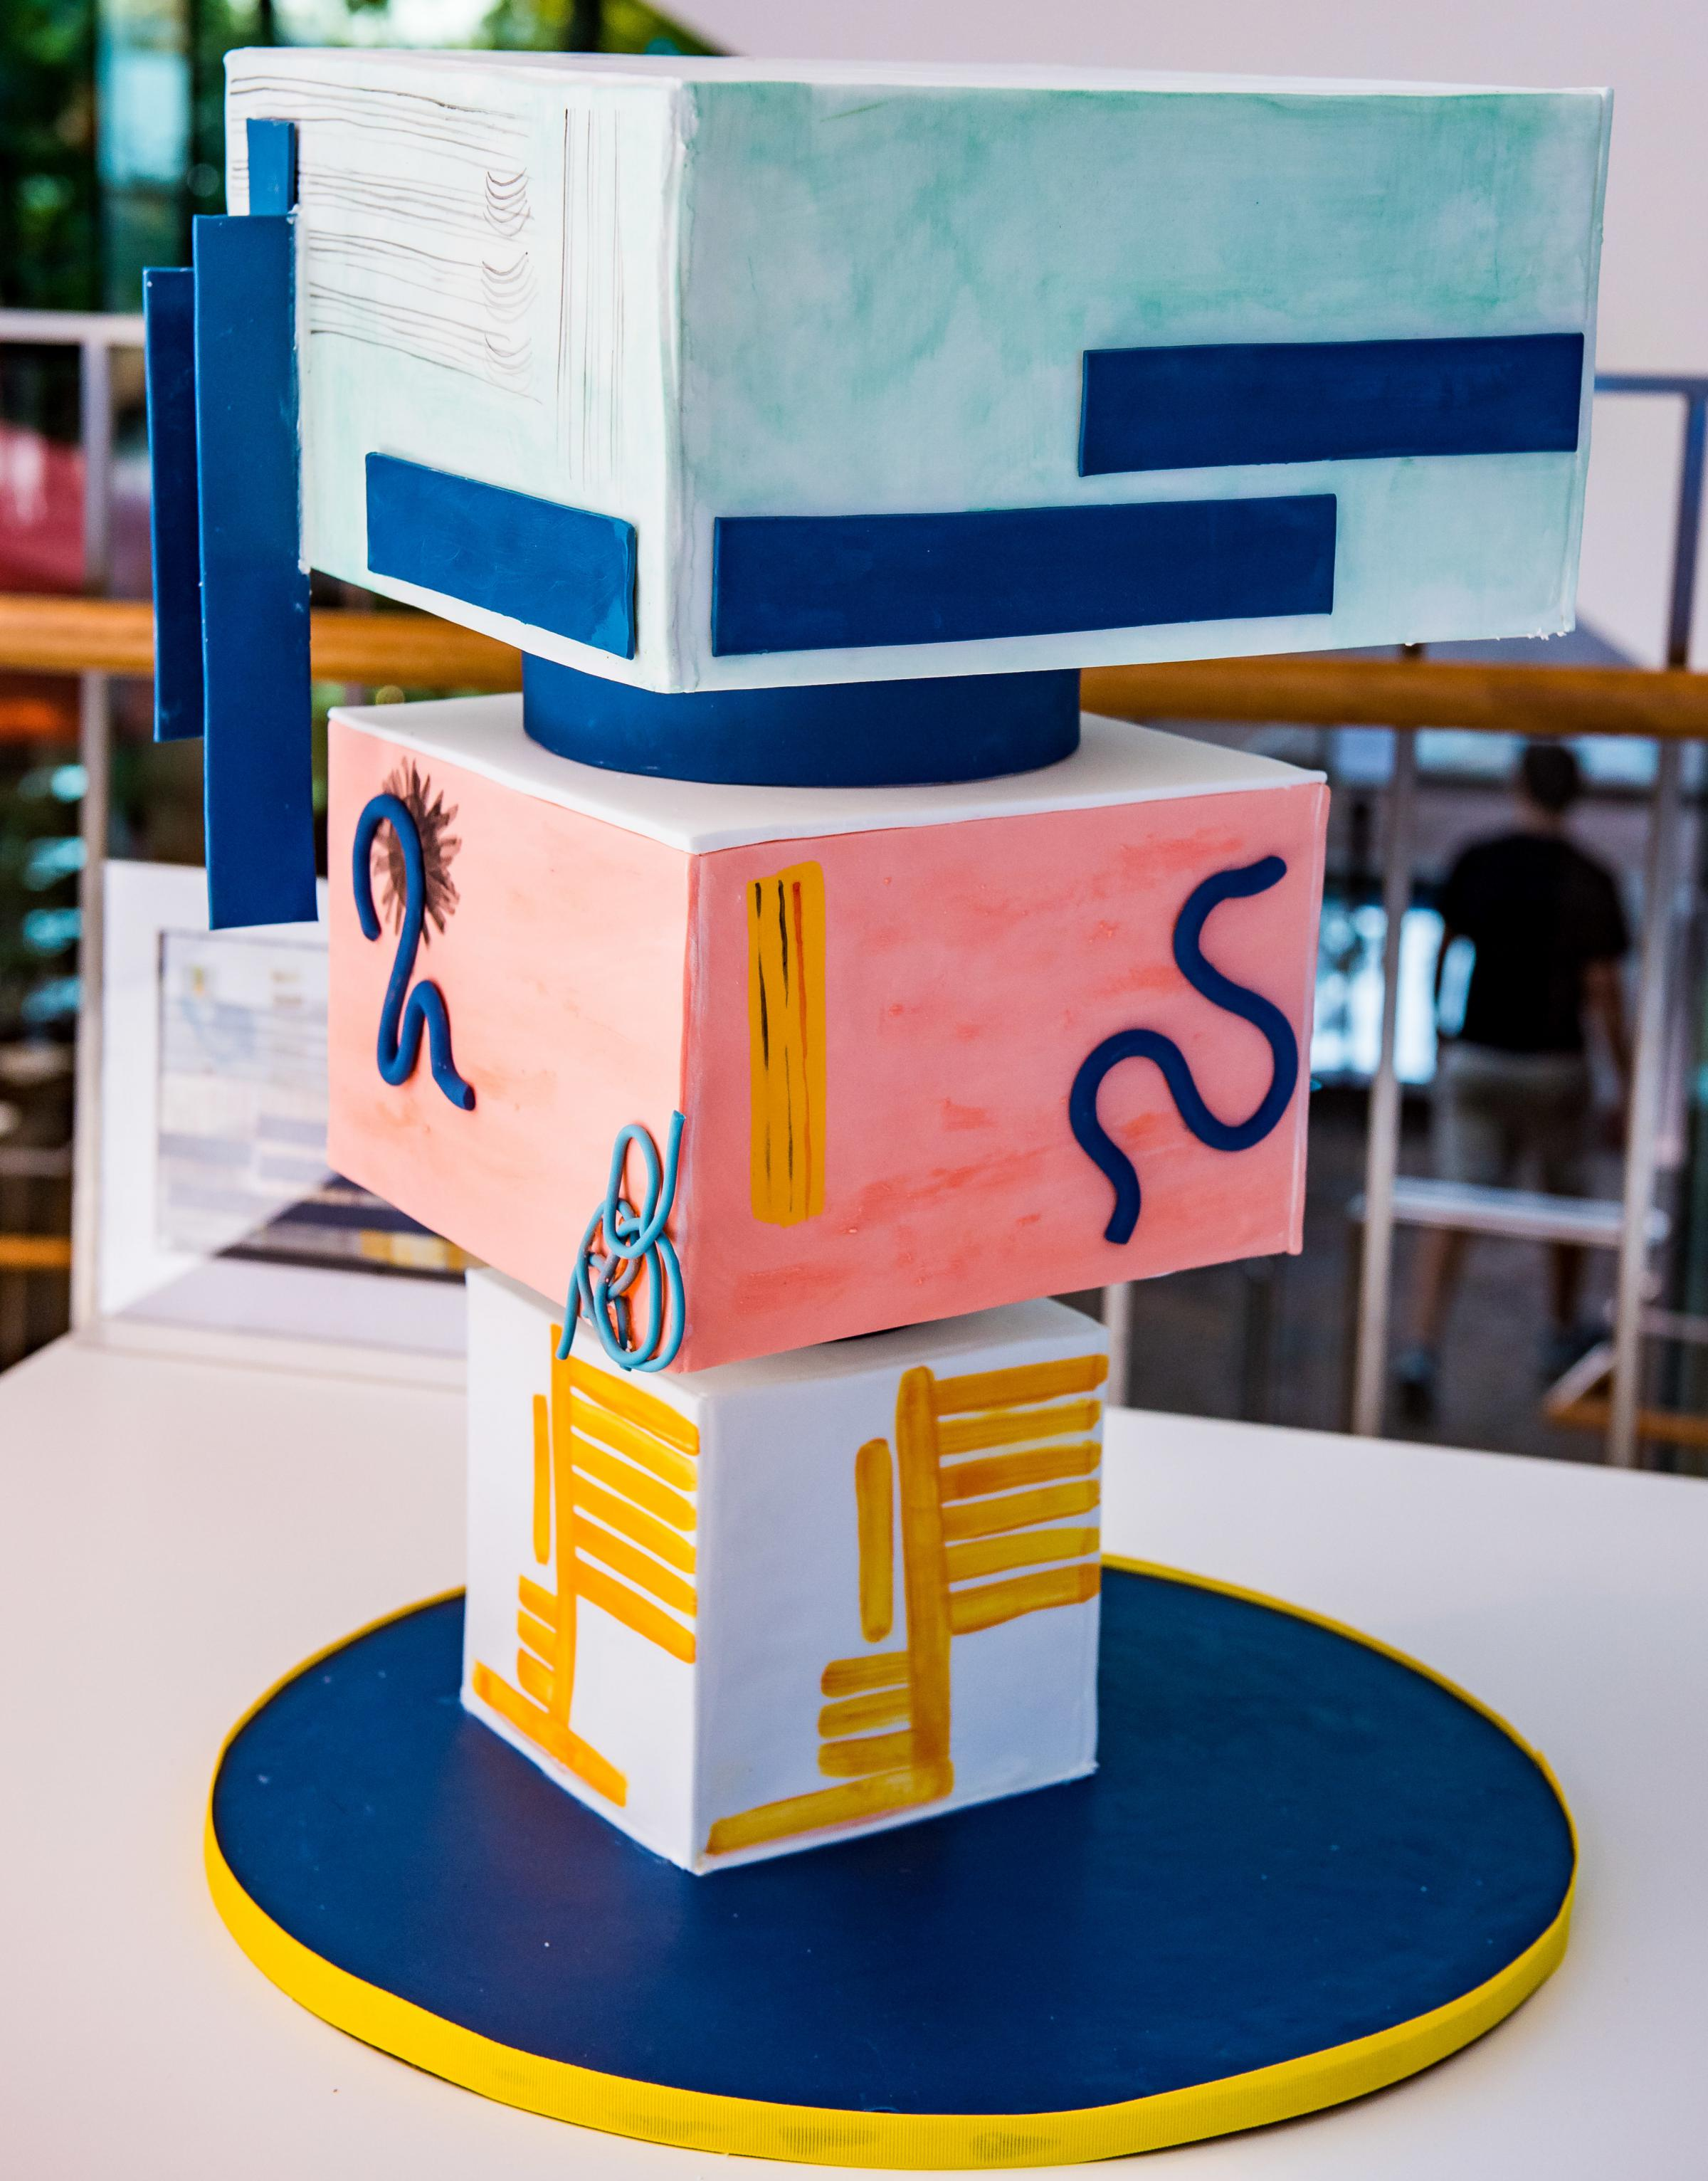 Mota's art-inspired cake at an event for the Birmingham Museum of Art